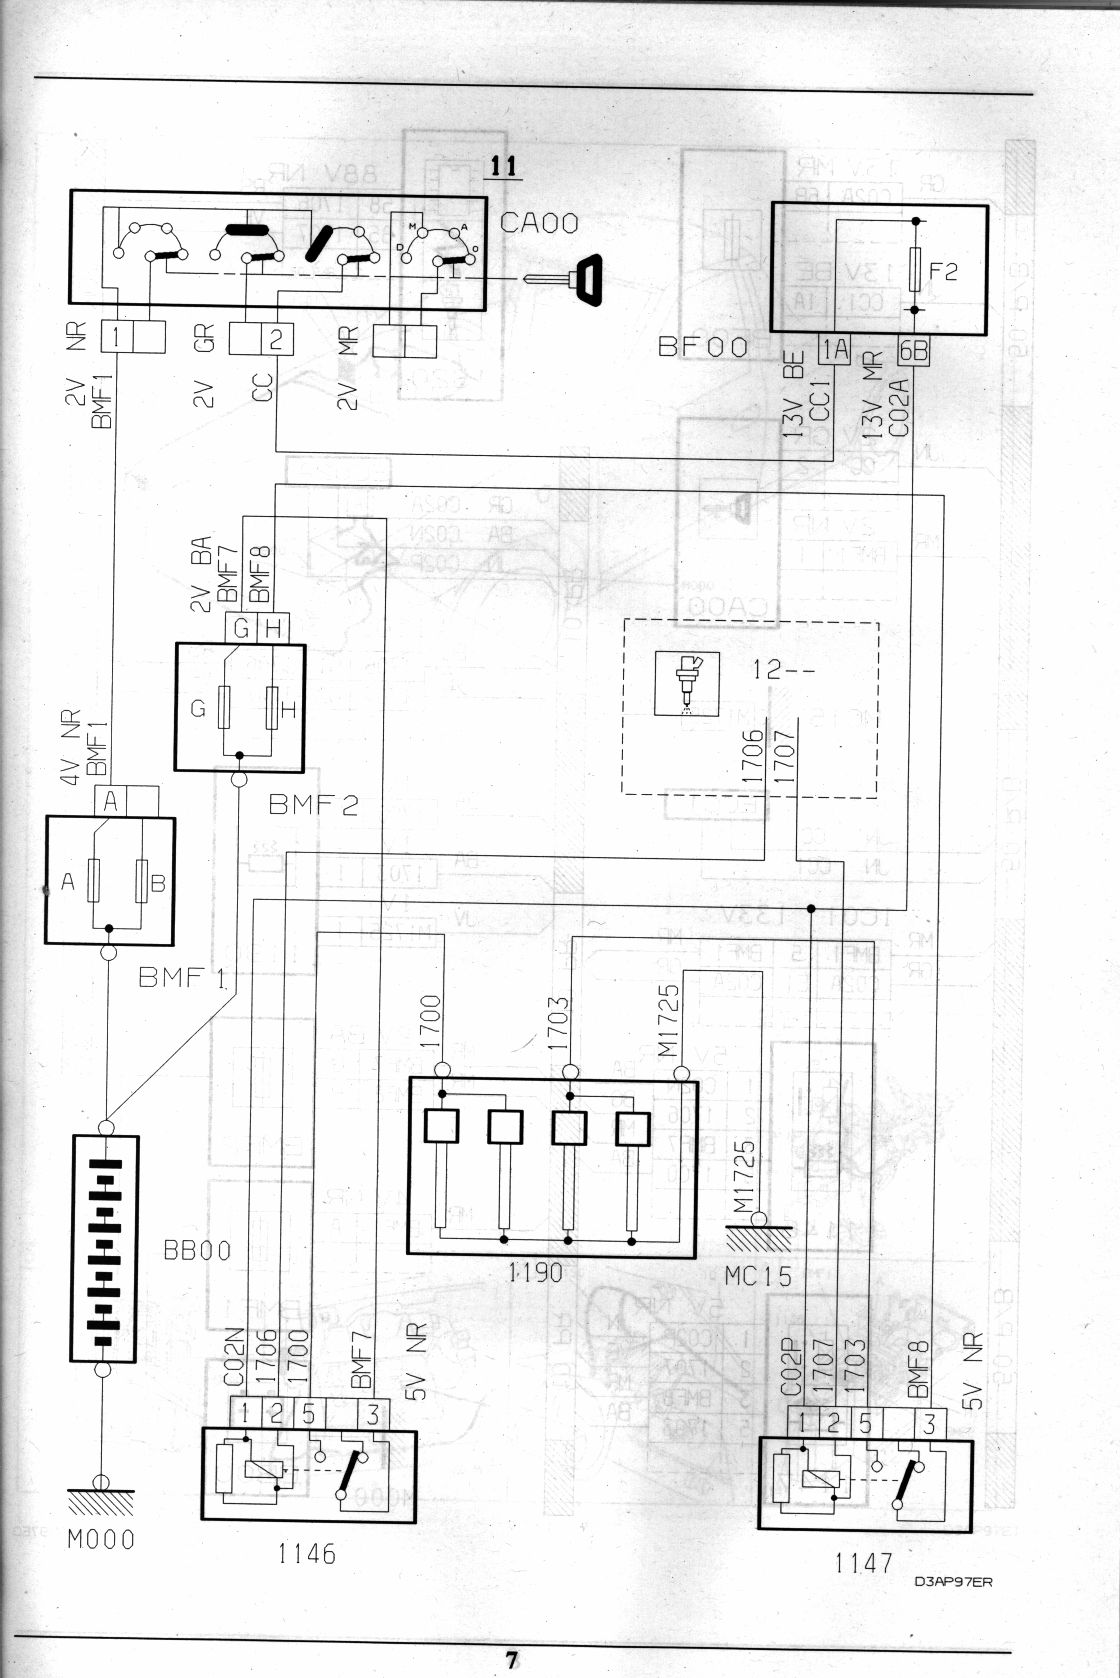 Wrg Wiring Diagram For Citroen Xsara Picasso